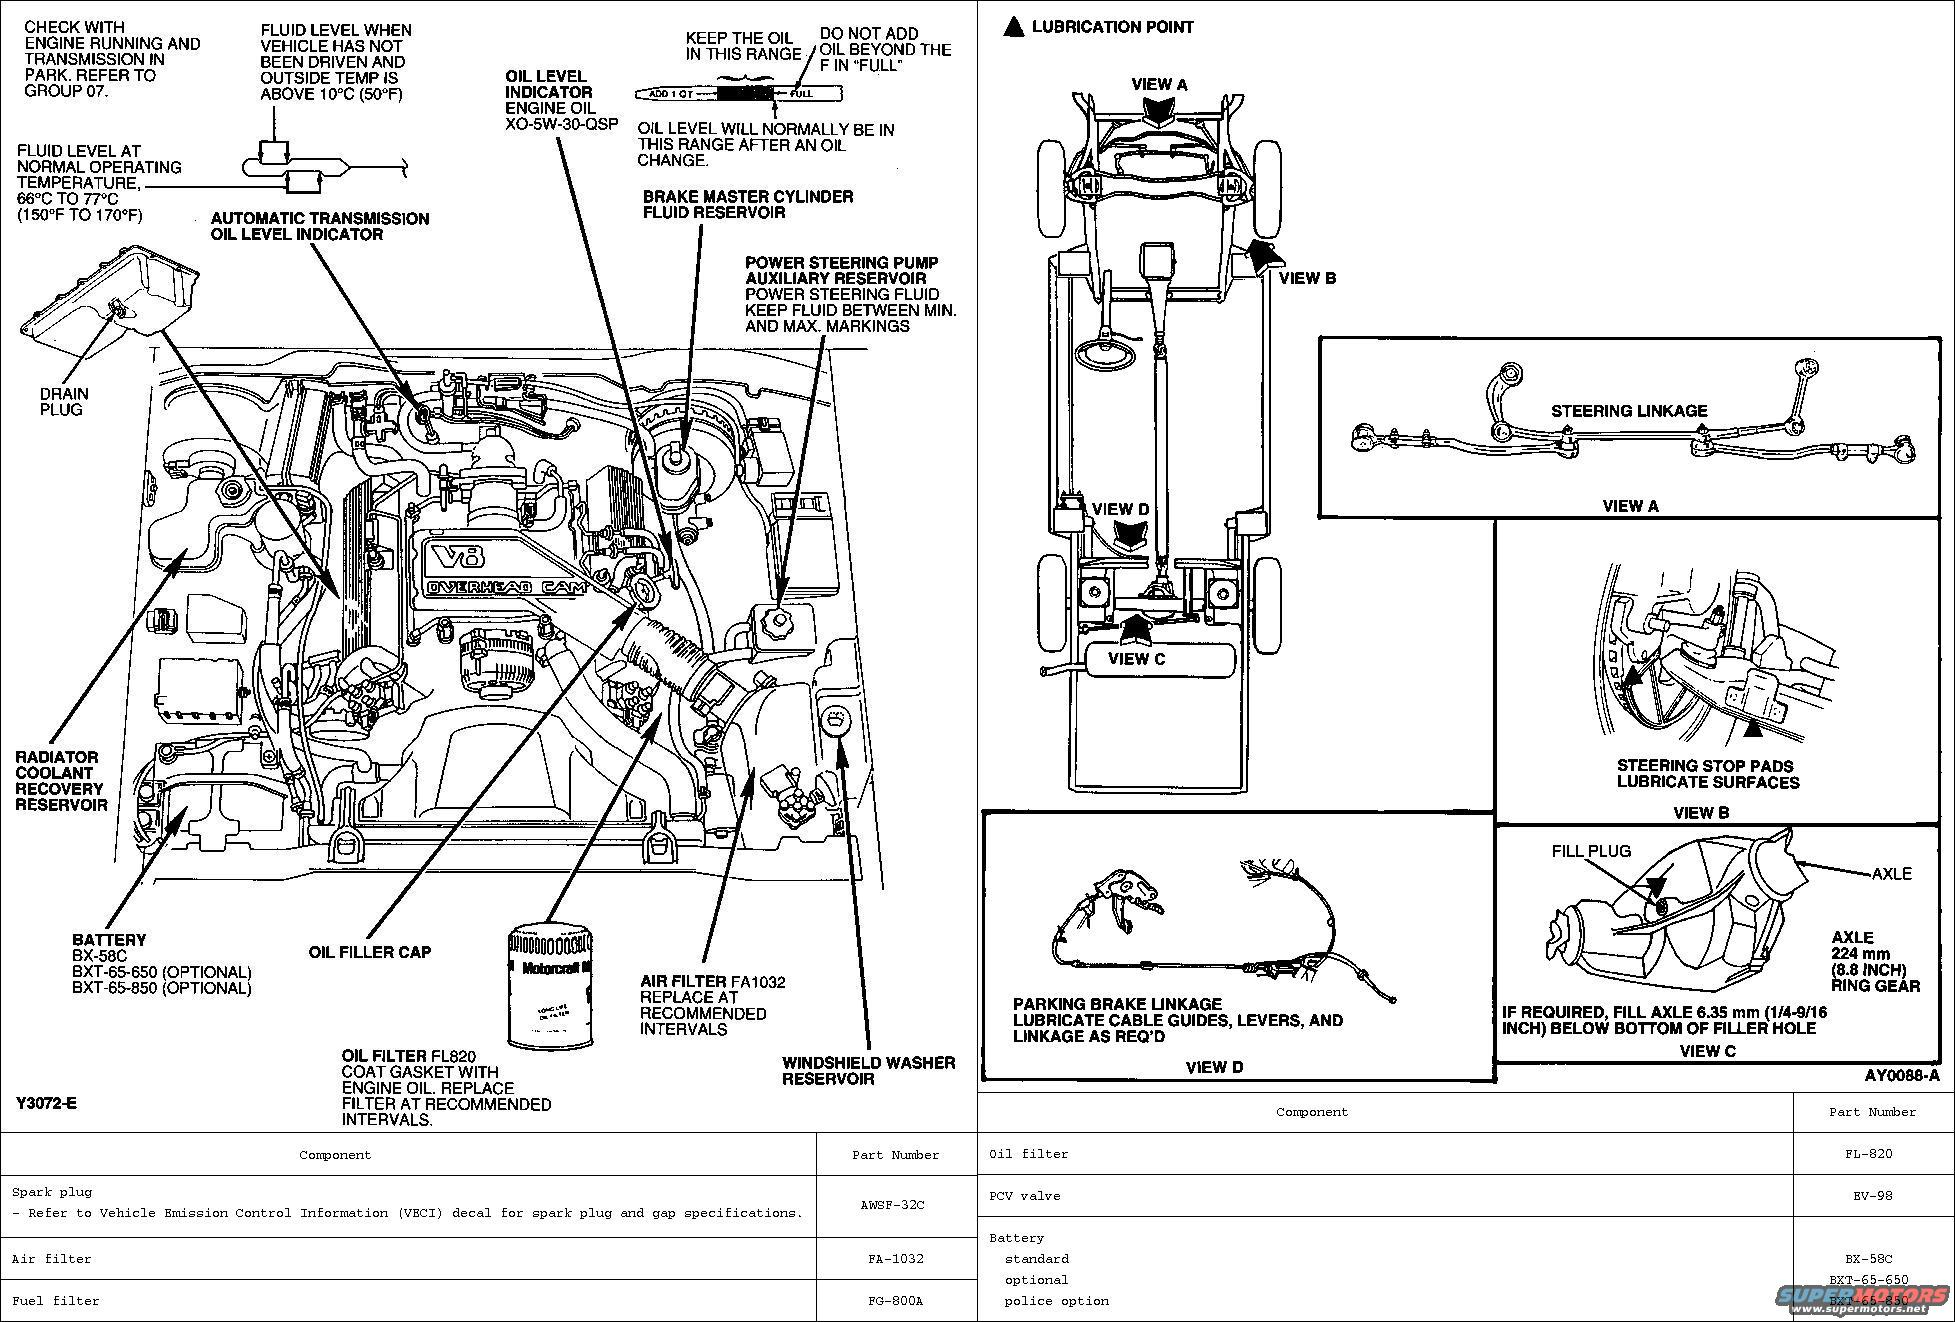 1994 ford crown victoria diagrams picture supermotors net